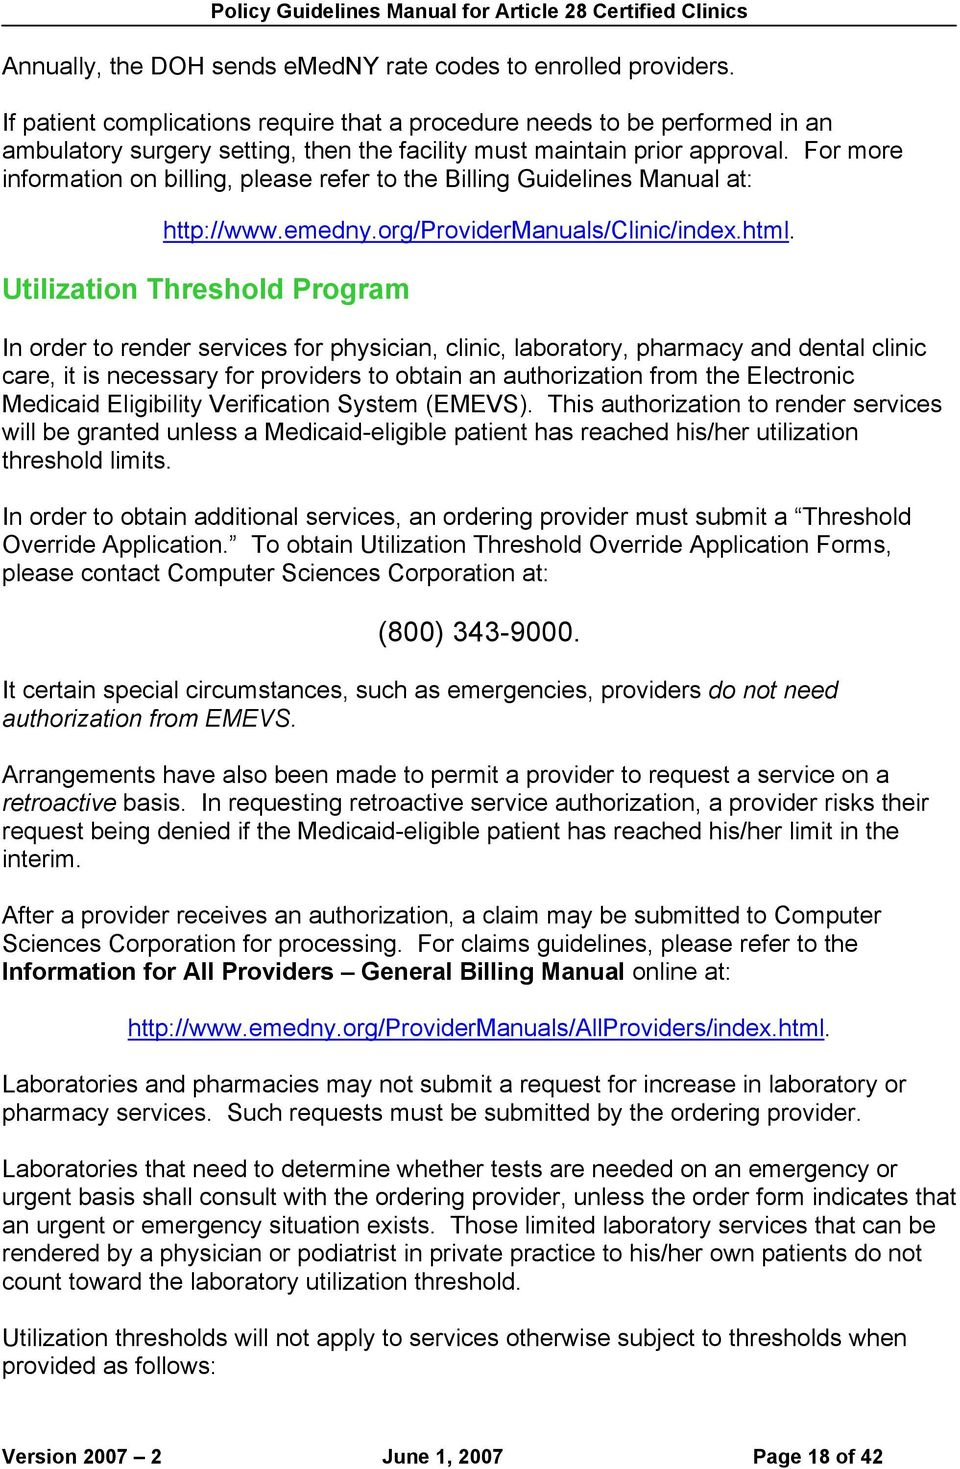 For more information on billing, please refer to the Billing Guidelines Manual at: http://www.emedny.org/providermanuals/clinic/index.html.